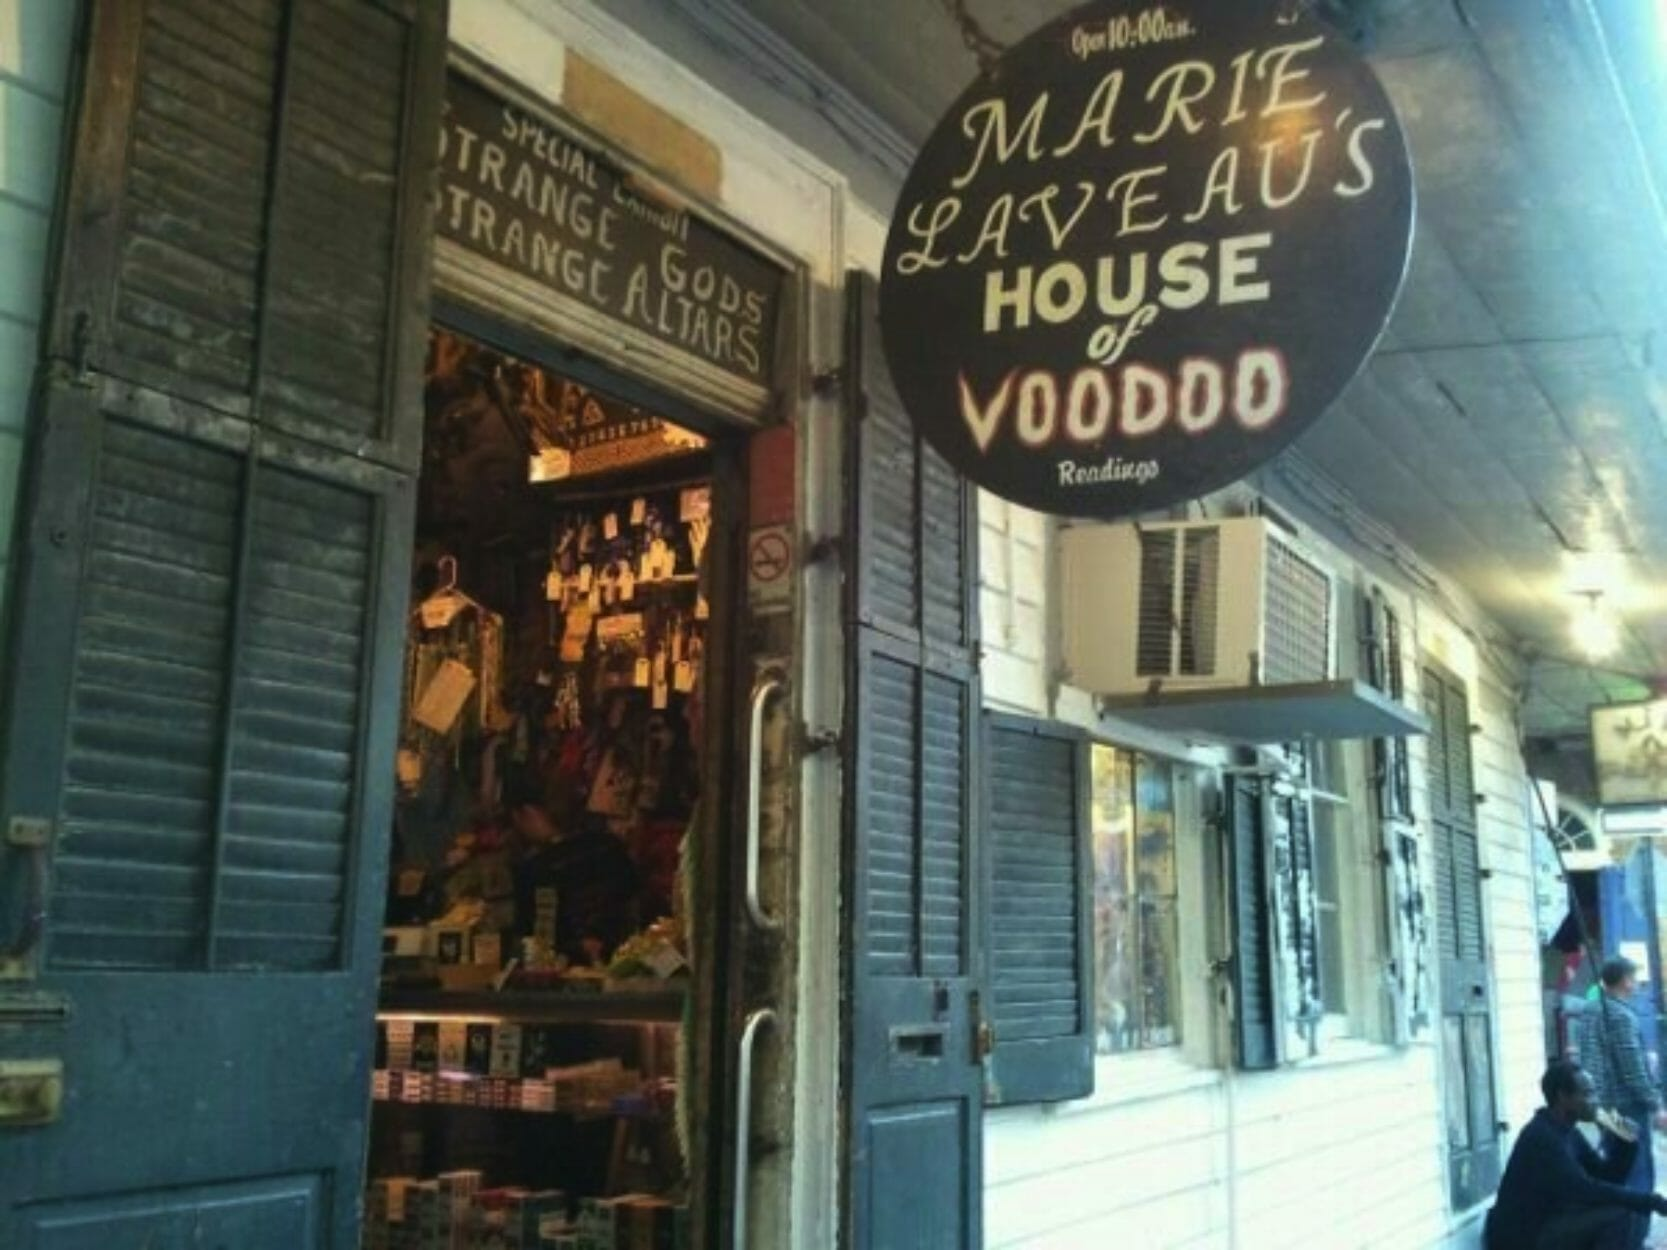 Lets Have A Little Rendezvous With New Orleans History: Voodoo!